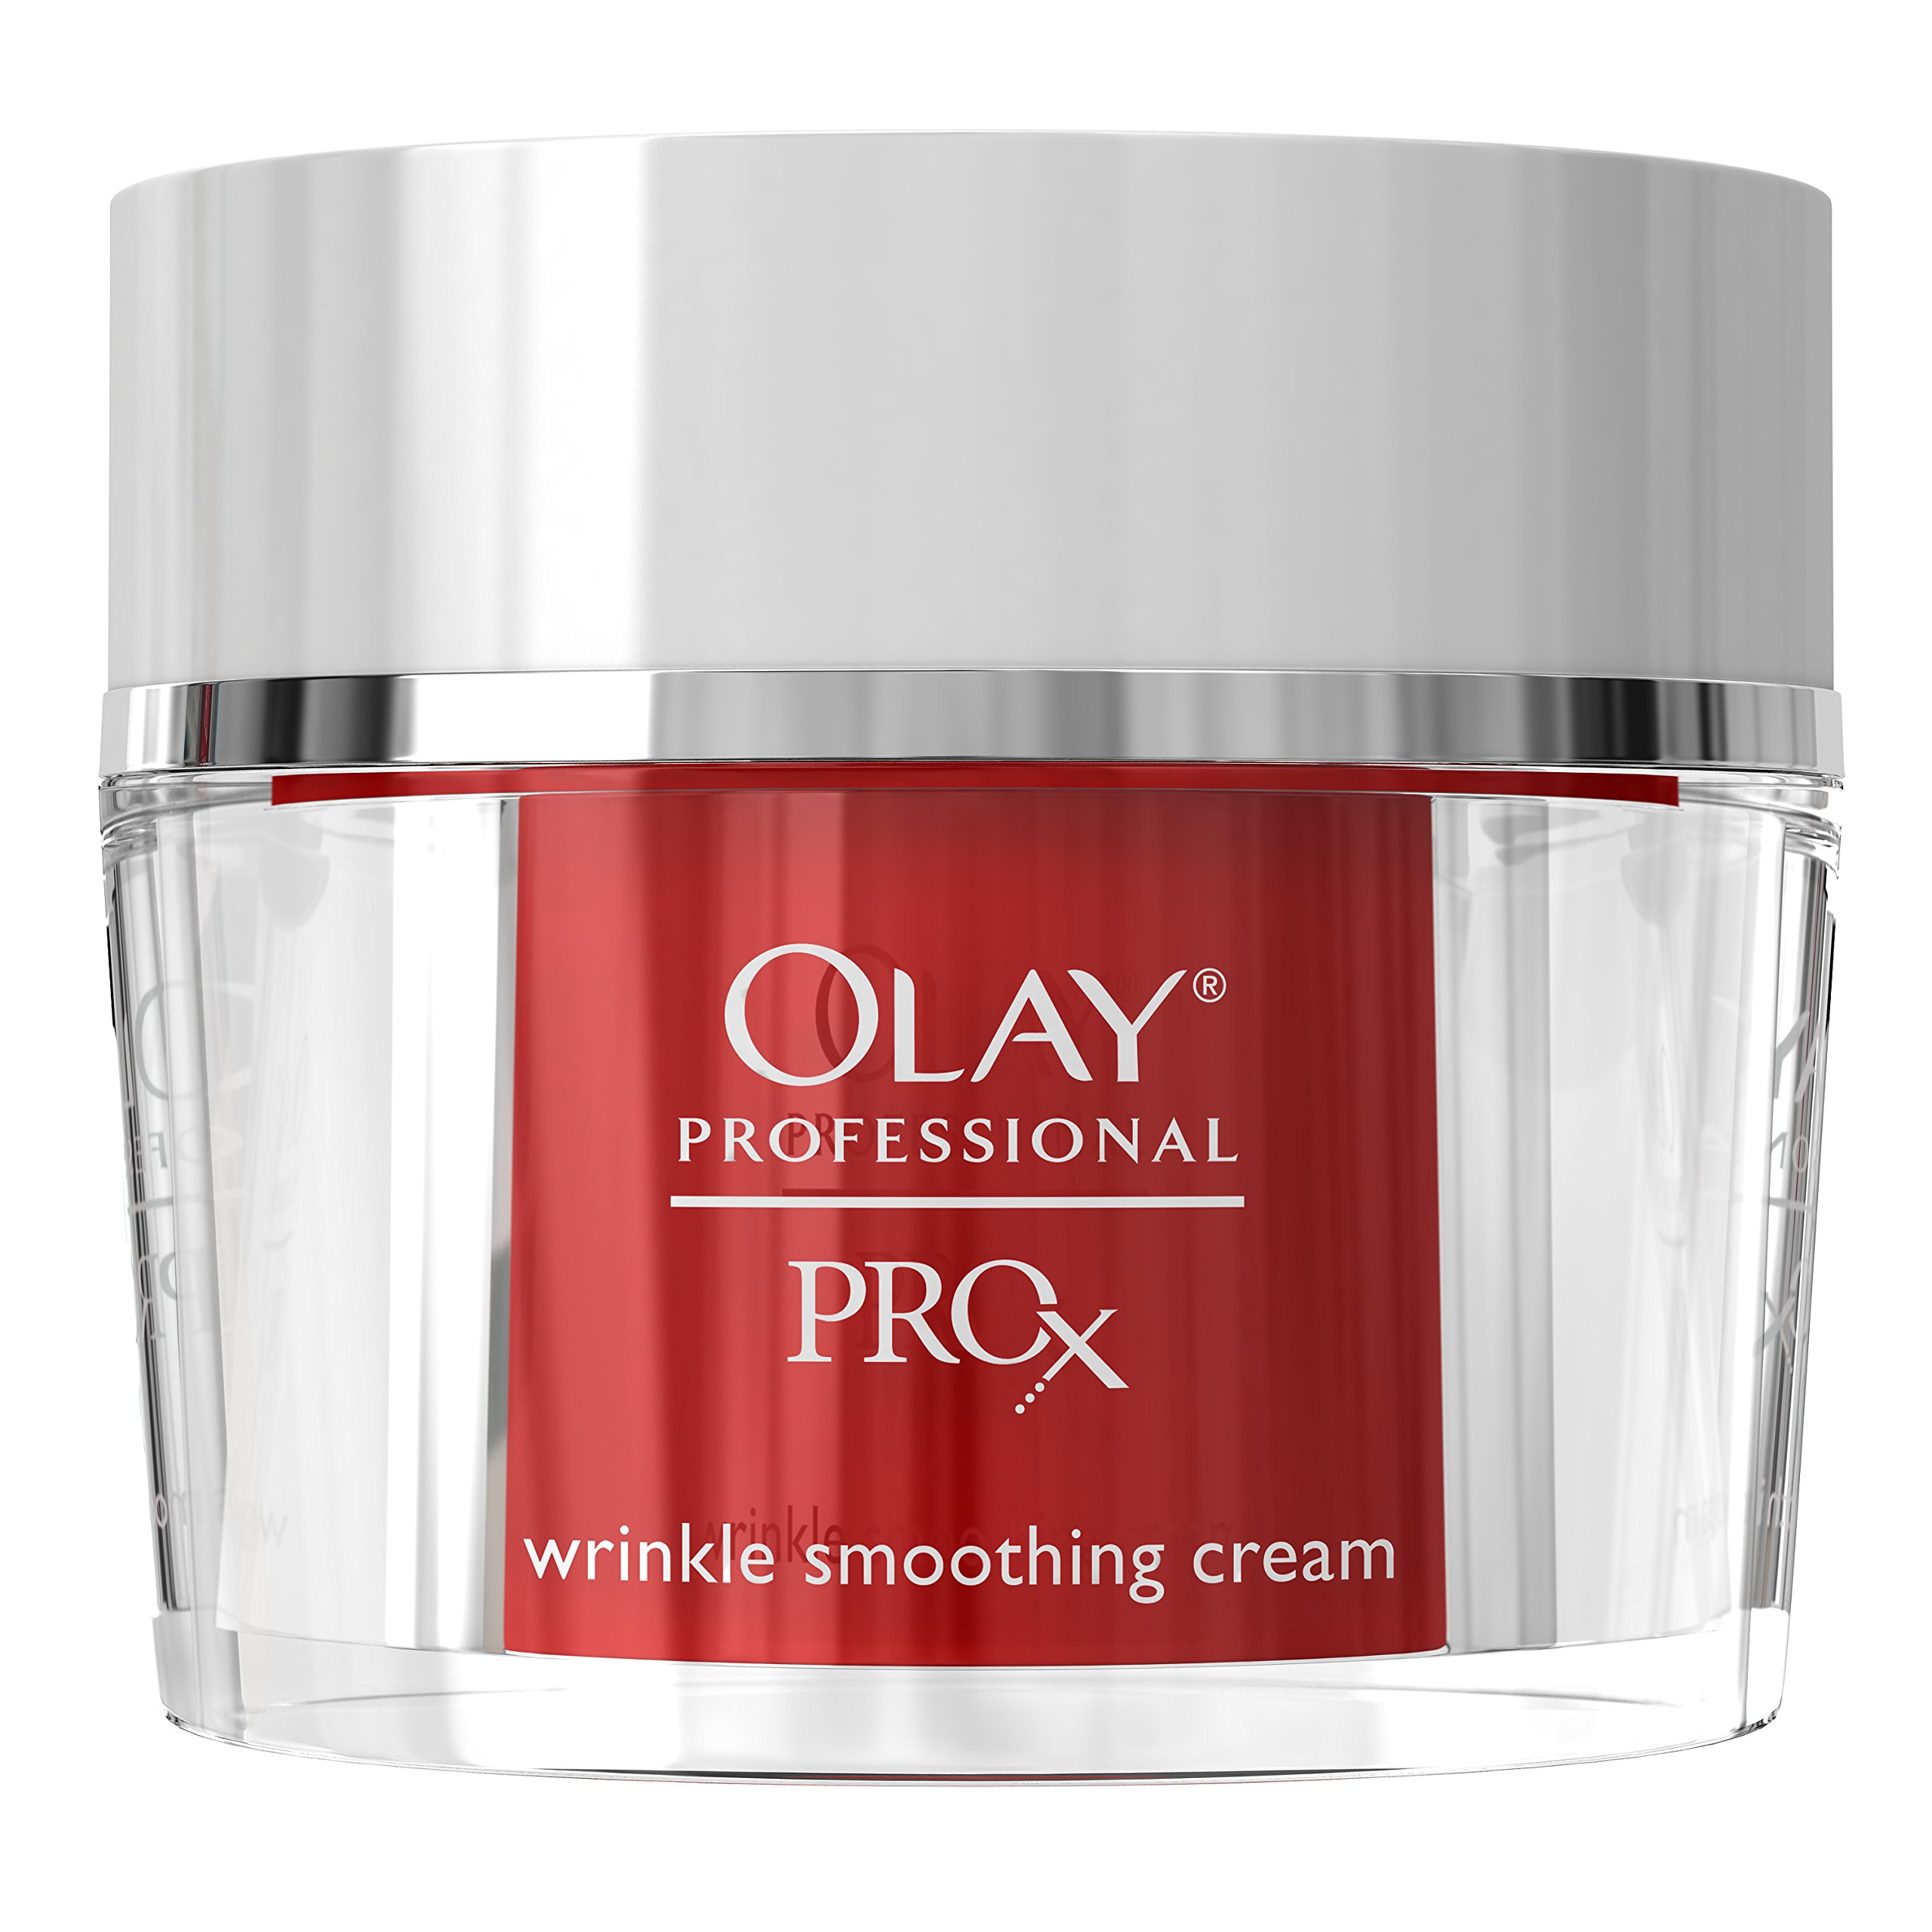 Olay Professional ProX Wrinkle Smoothing Cream Anti Aging 1.7 Oz Packaging may Vary